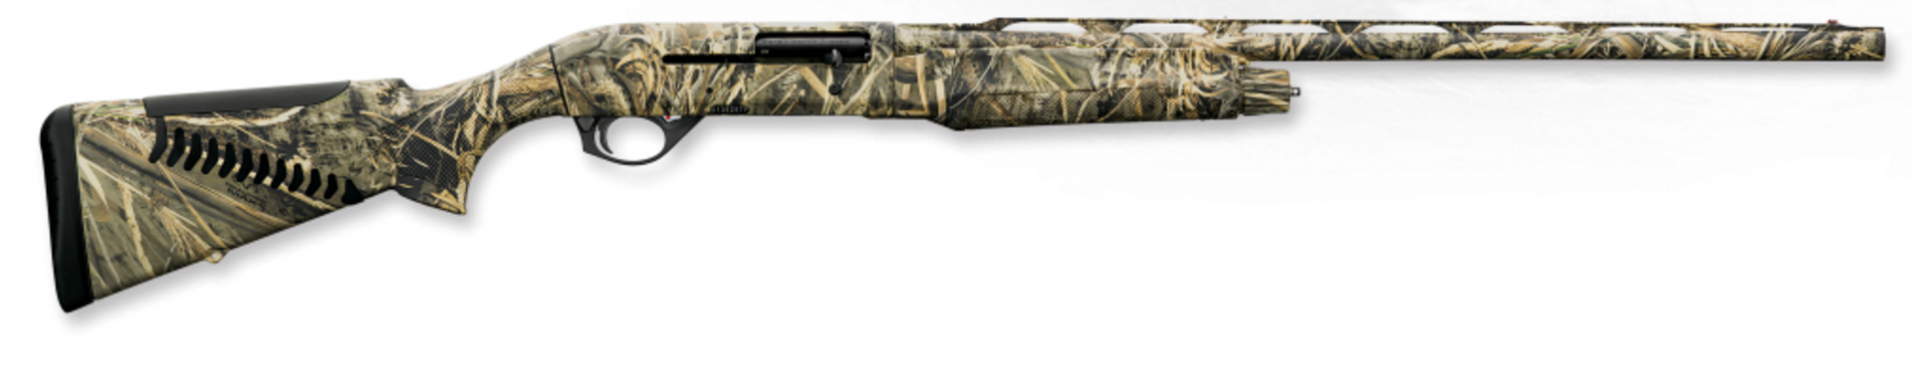 "M2 Field |12Ga, 26"" Barrel, 3"" Chamber, Realtree Max-5 Camo, Inertia-Driven Action, Synthetic Stock, Comfortech Recoil Reduction, C, IC, M, IM, F Crio Chokes, Shim Kit, 3+1 Capacity"